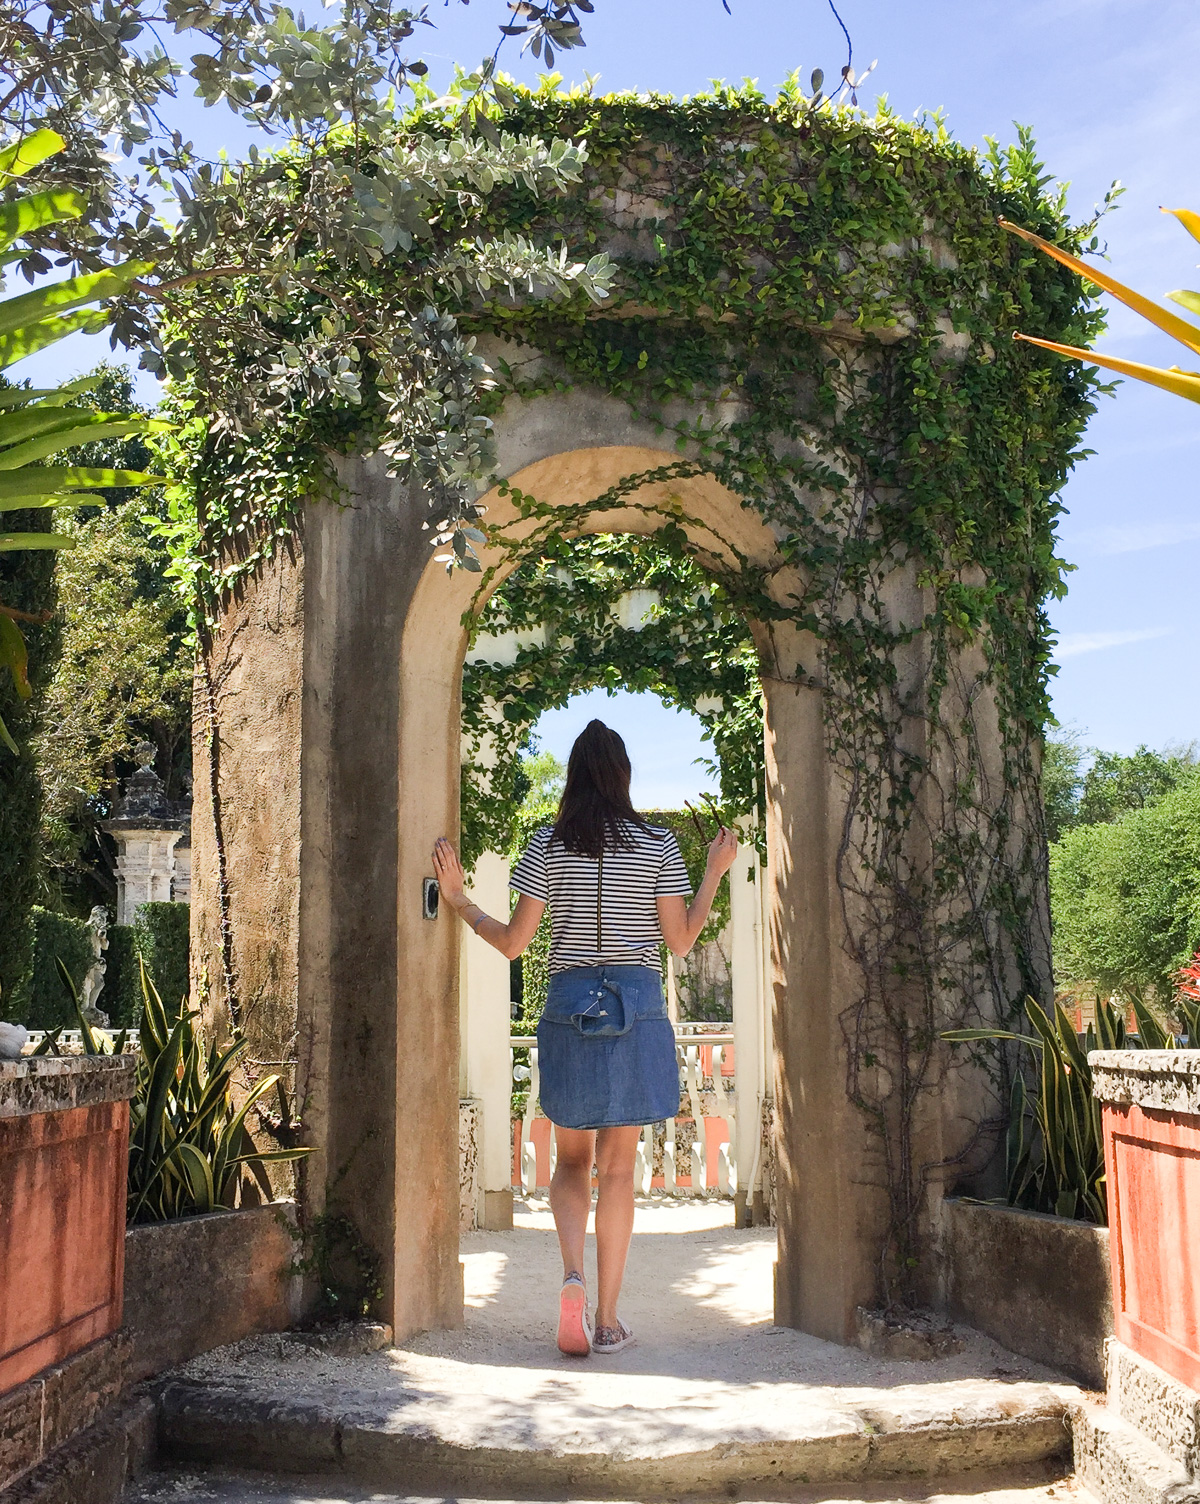 Exploring the Vizcaya Museum and Gardens